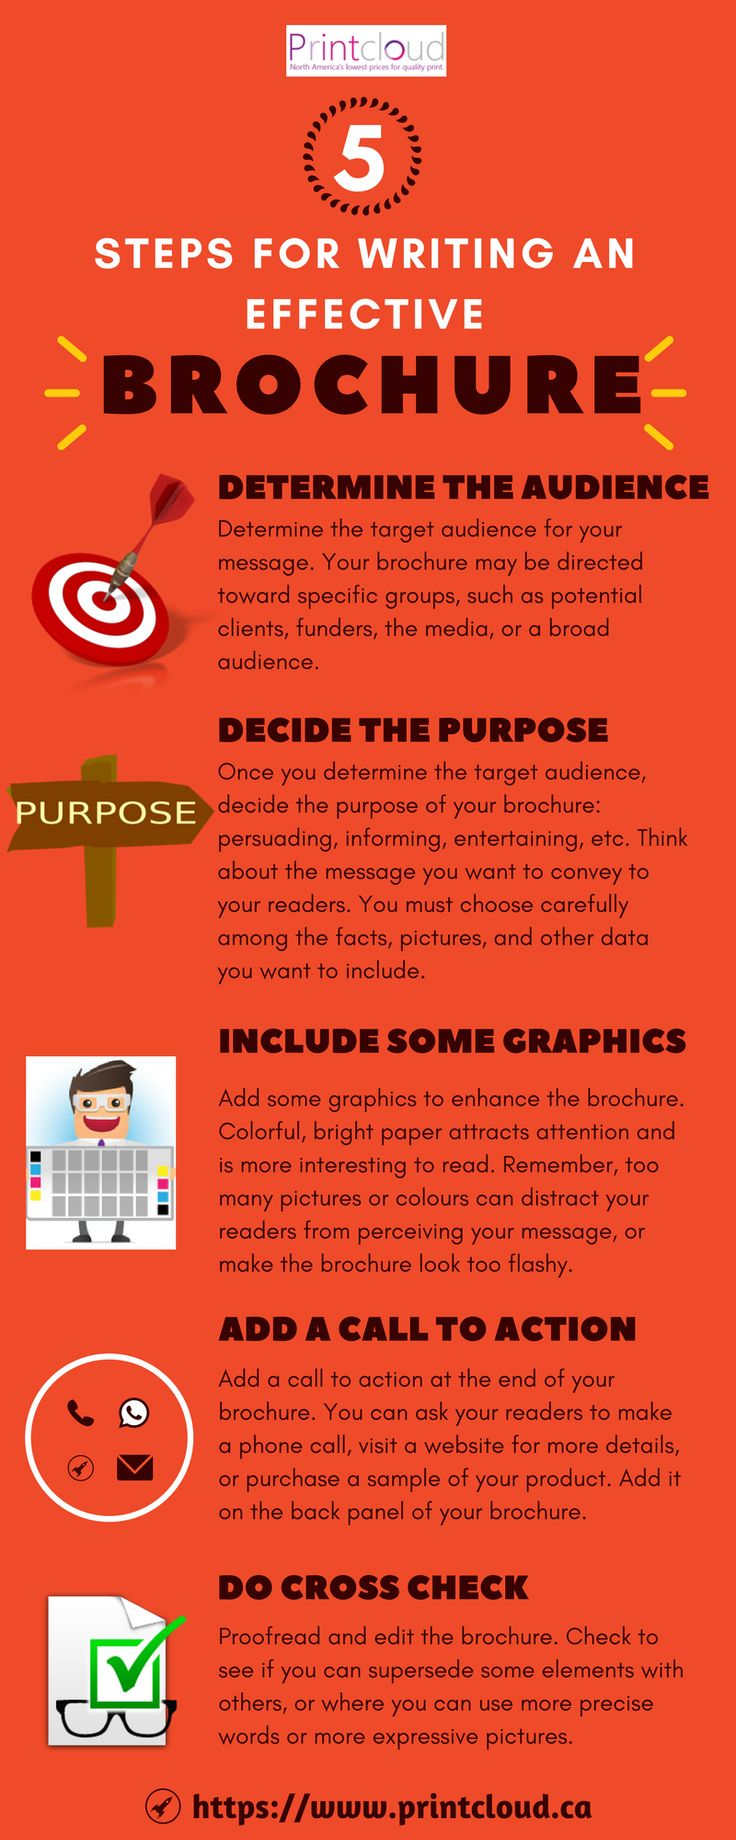 5 Steps of Writing an Effective Brochure